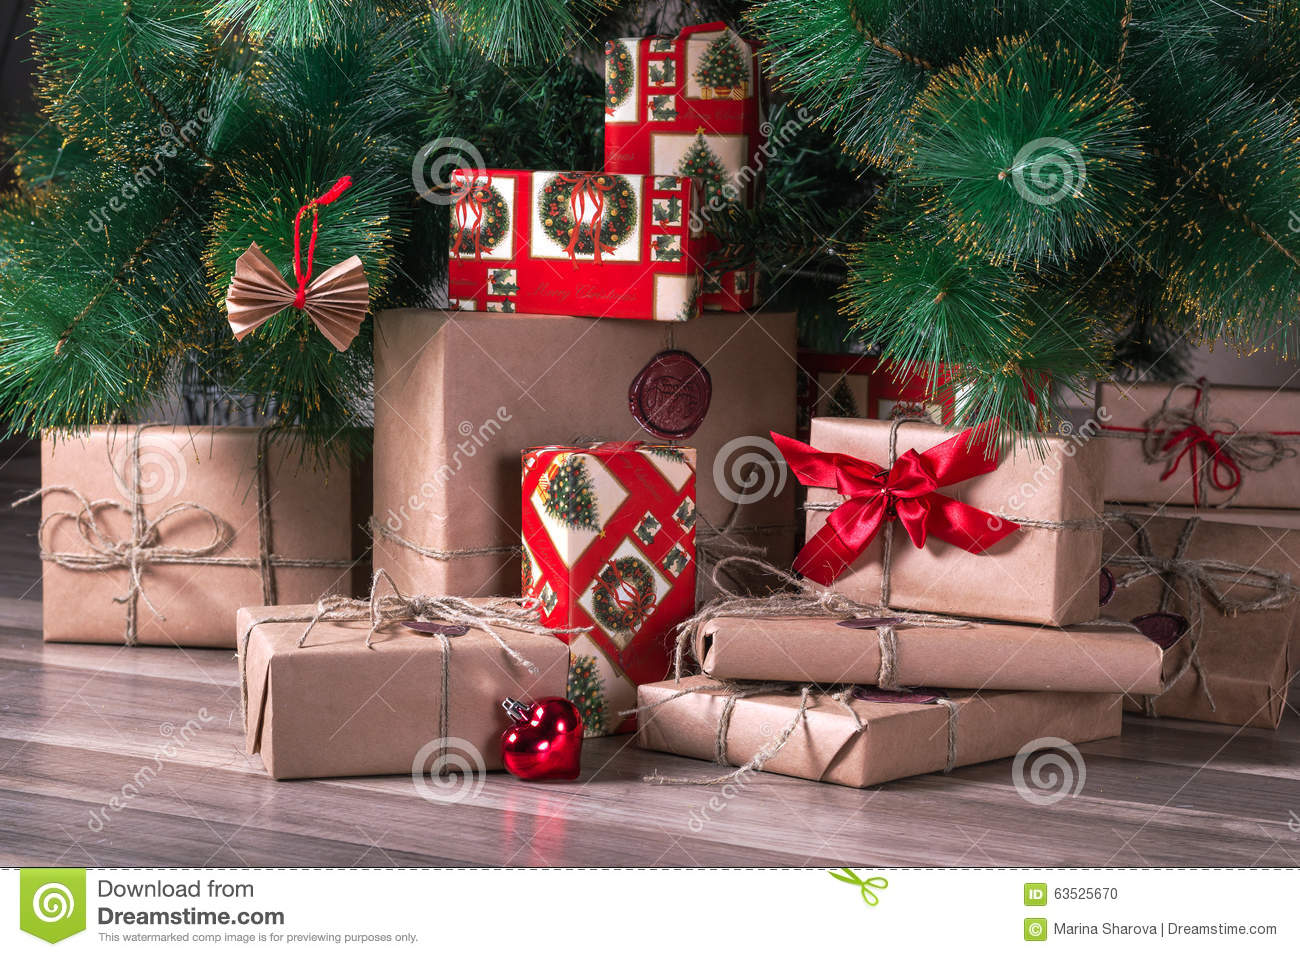 What are the Different Types of Gift Wrap? (with pictures) |Wrapped Christmas Presents Under The Tree